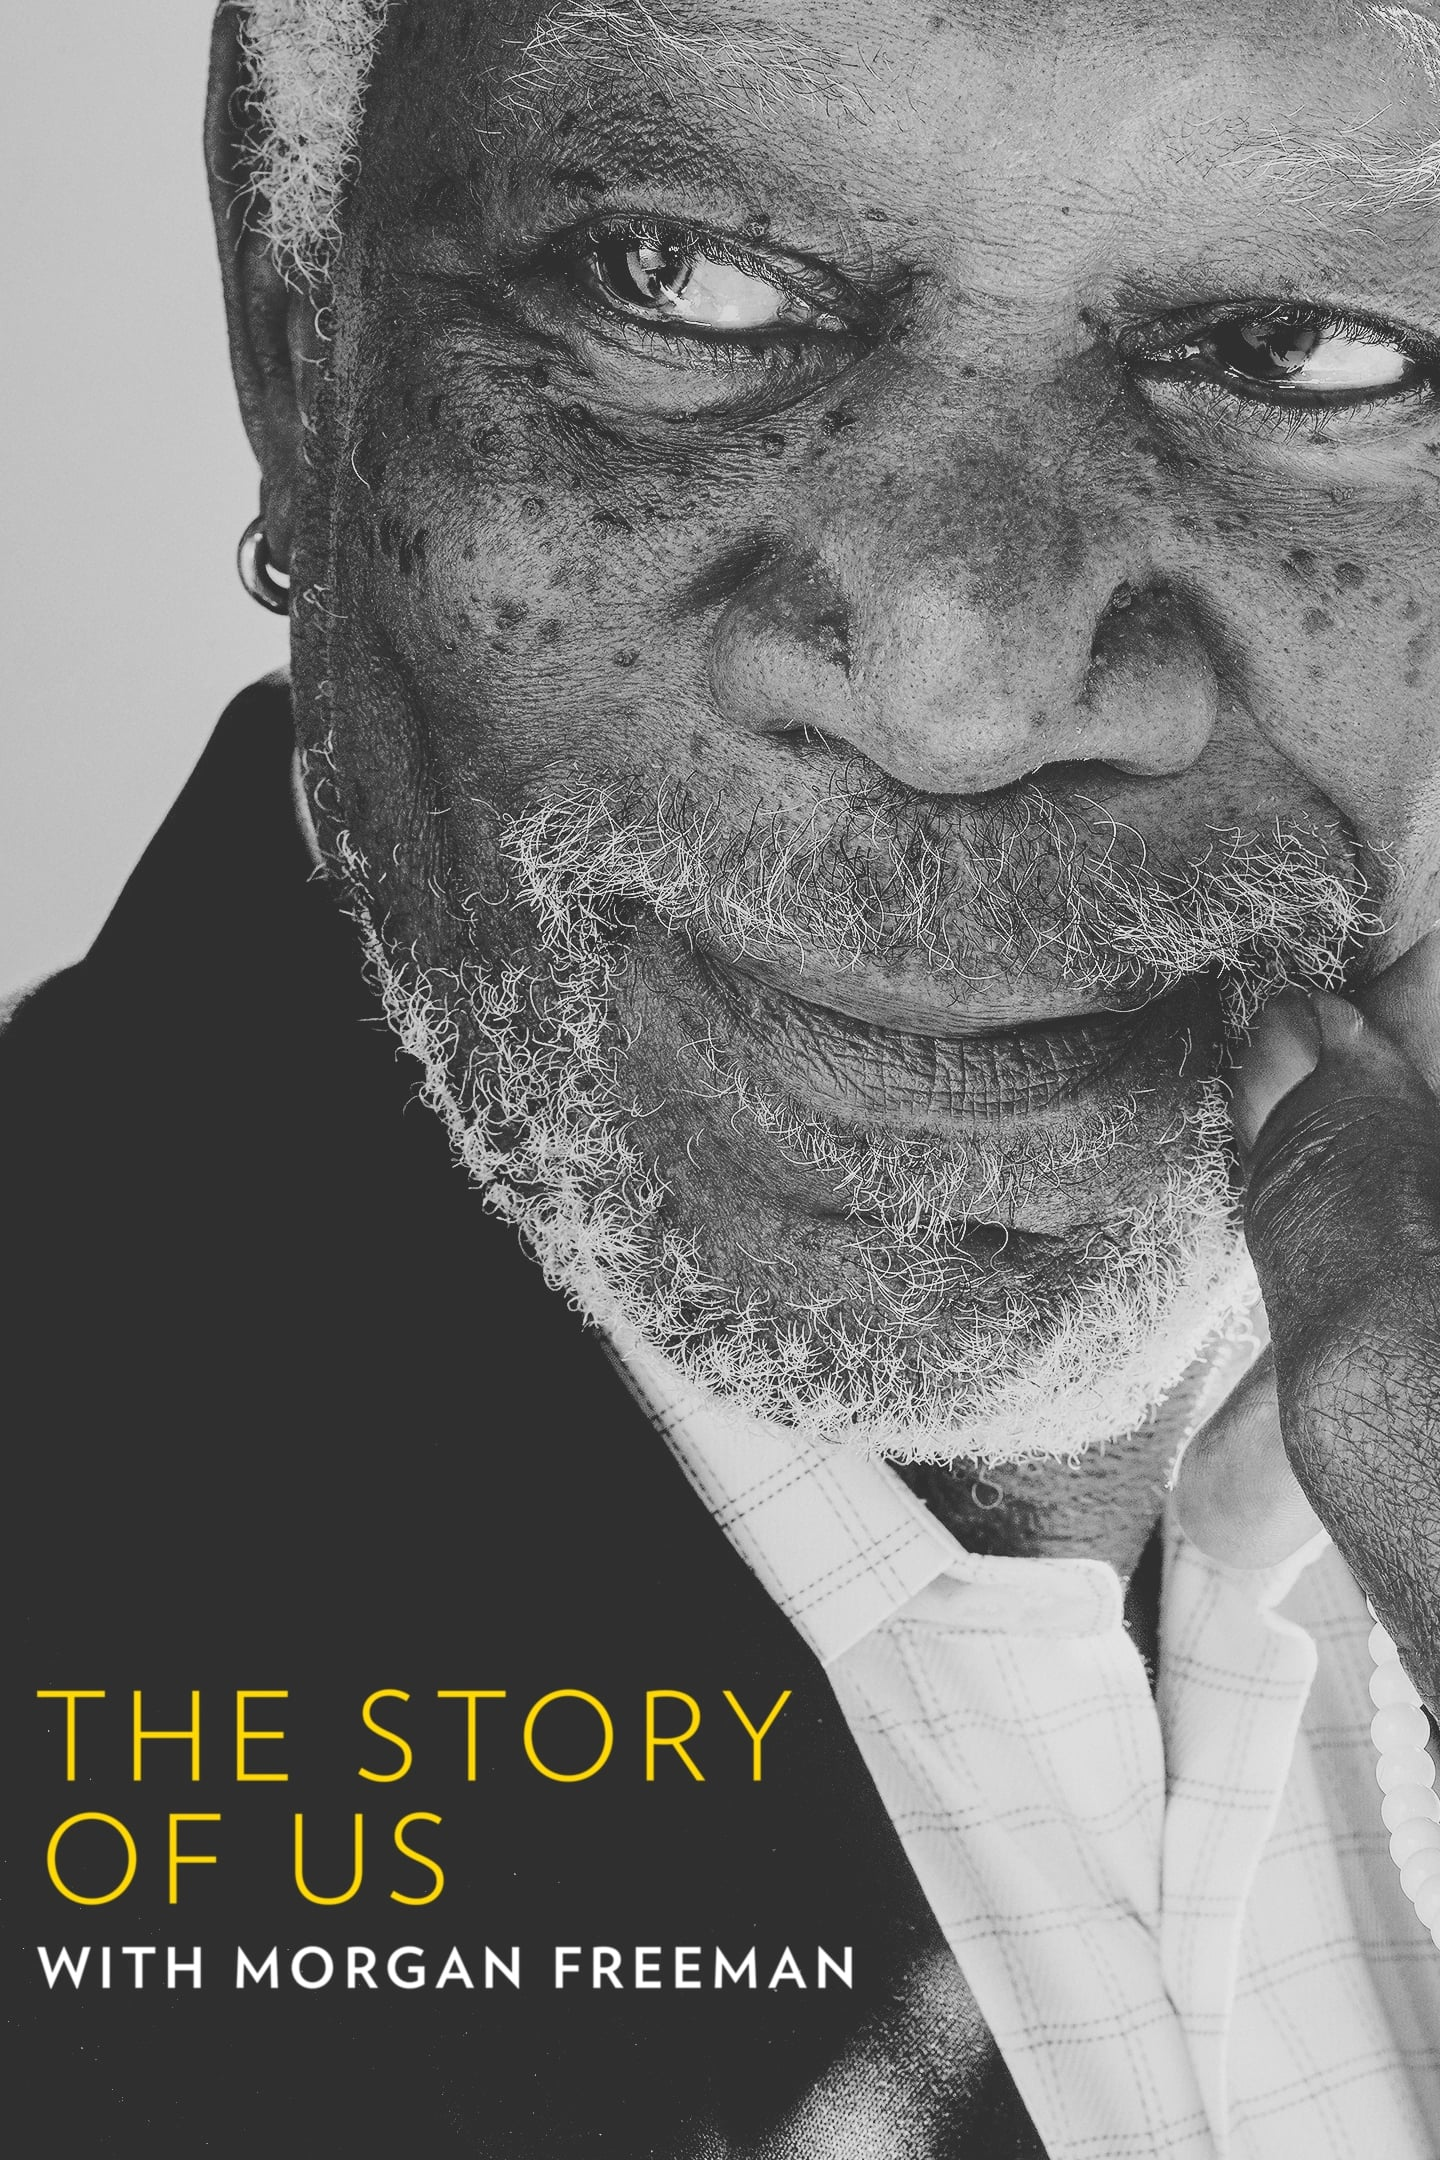 The Story of Us with Morgan Freeman (2017)